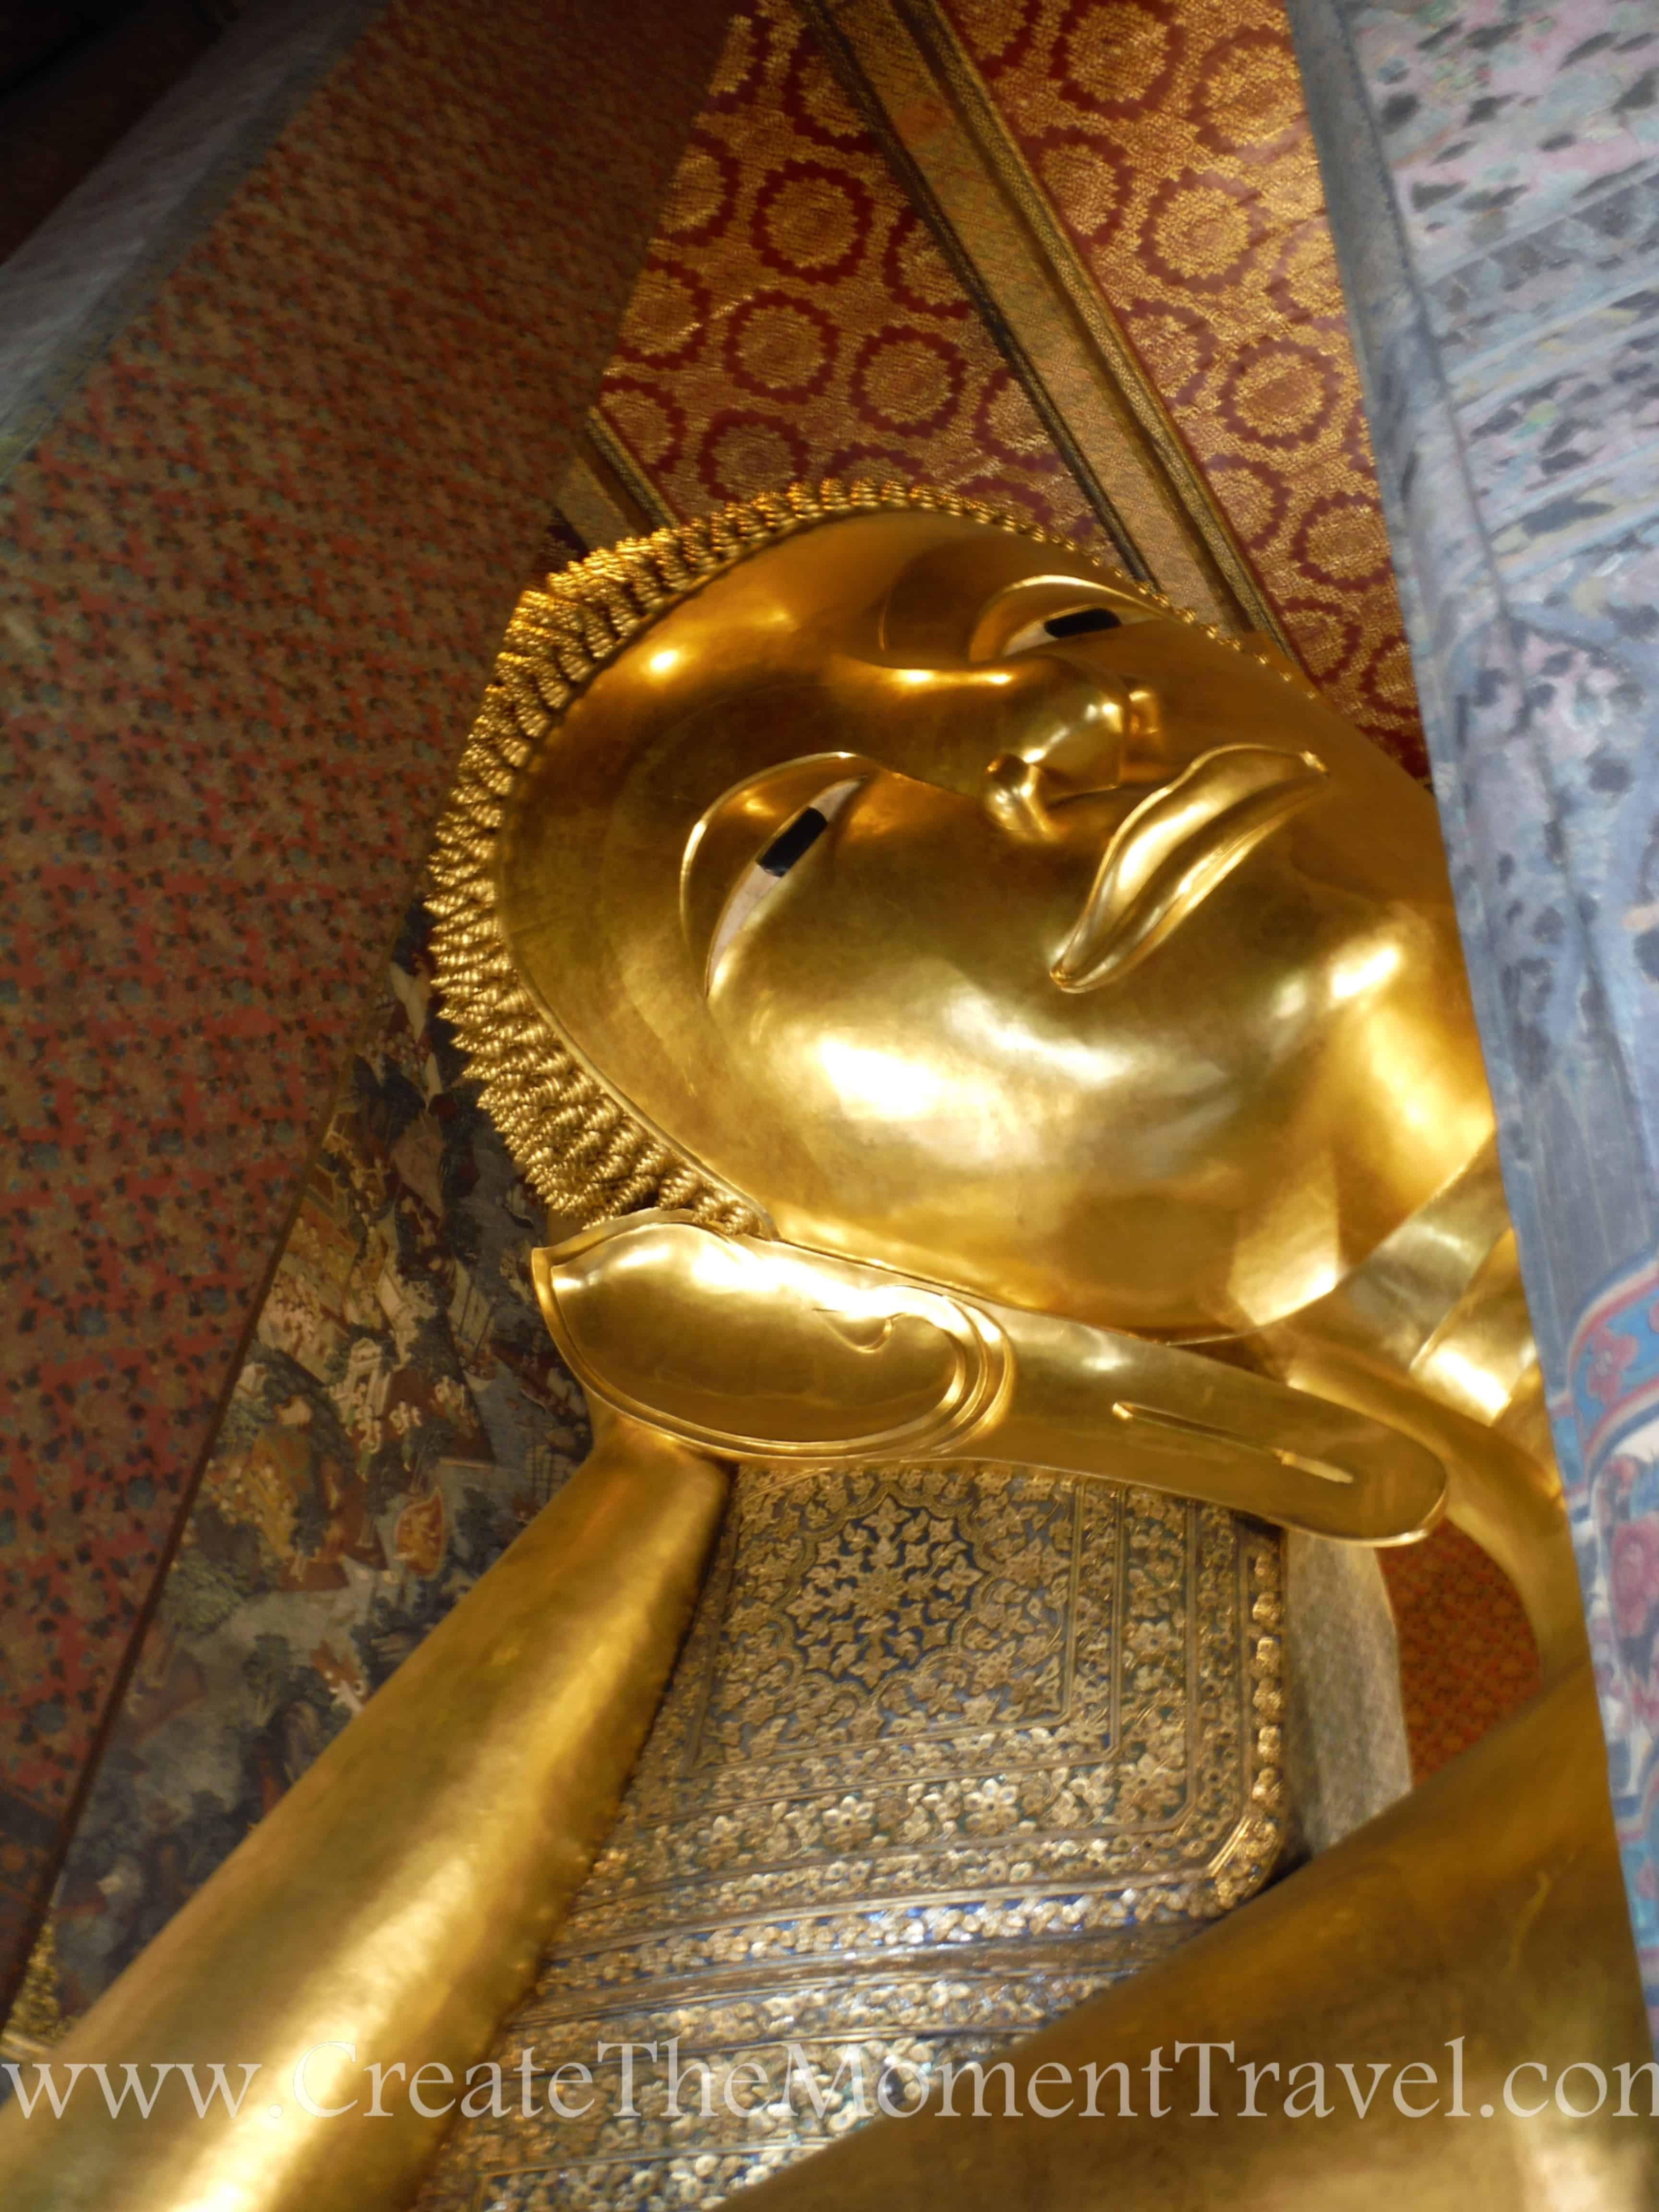 Reclining Buddah Grand Palace, Bangkok Thailand by Create The Moment Travel